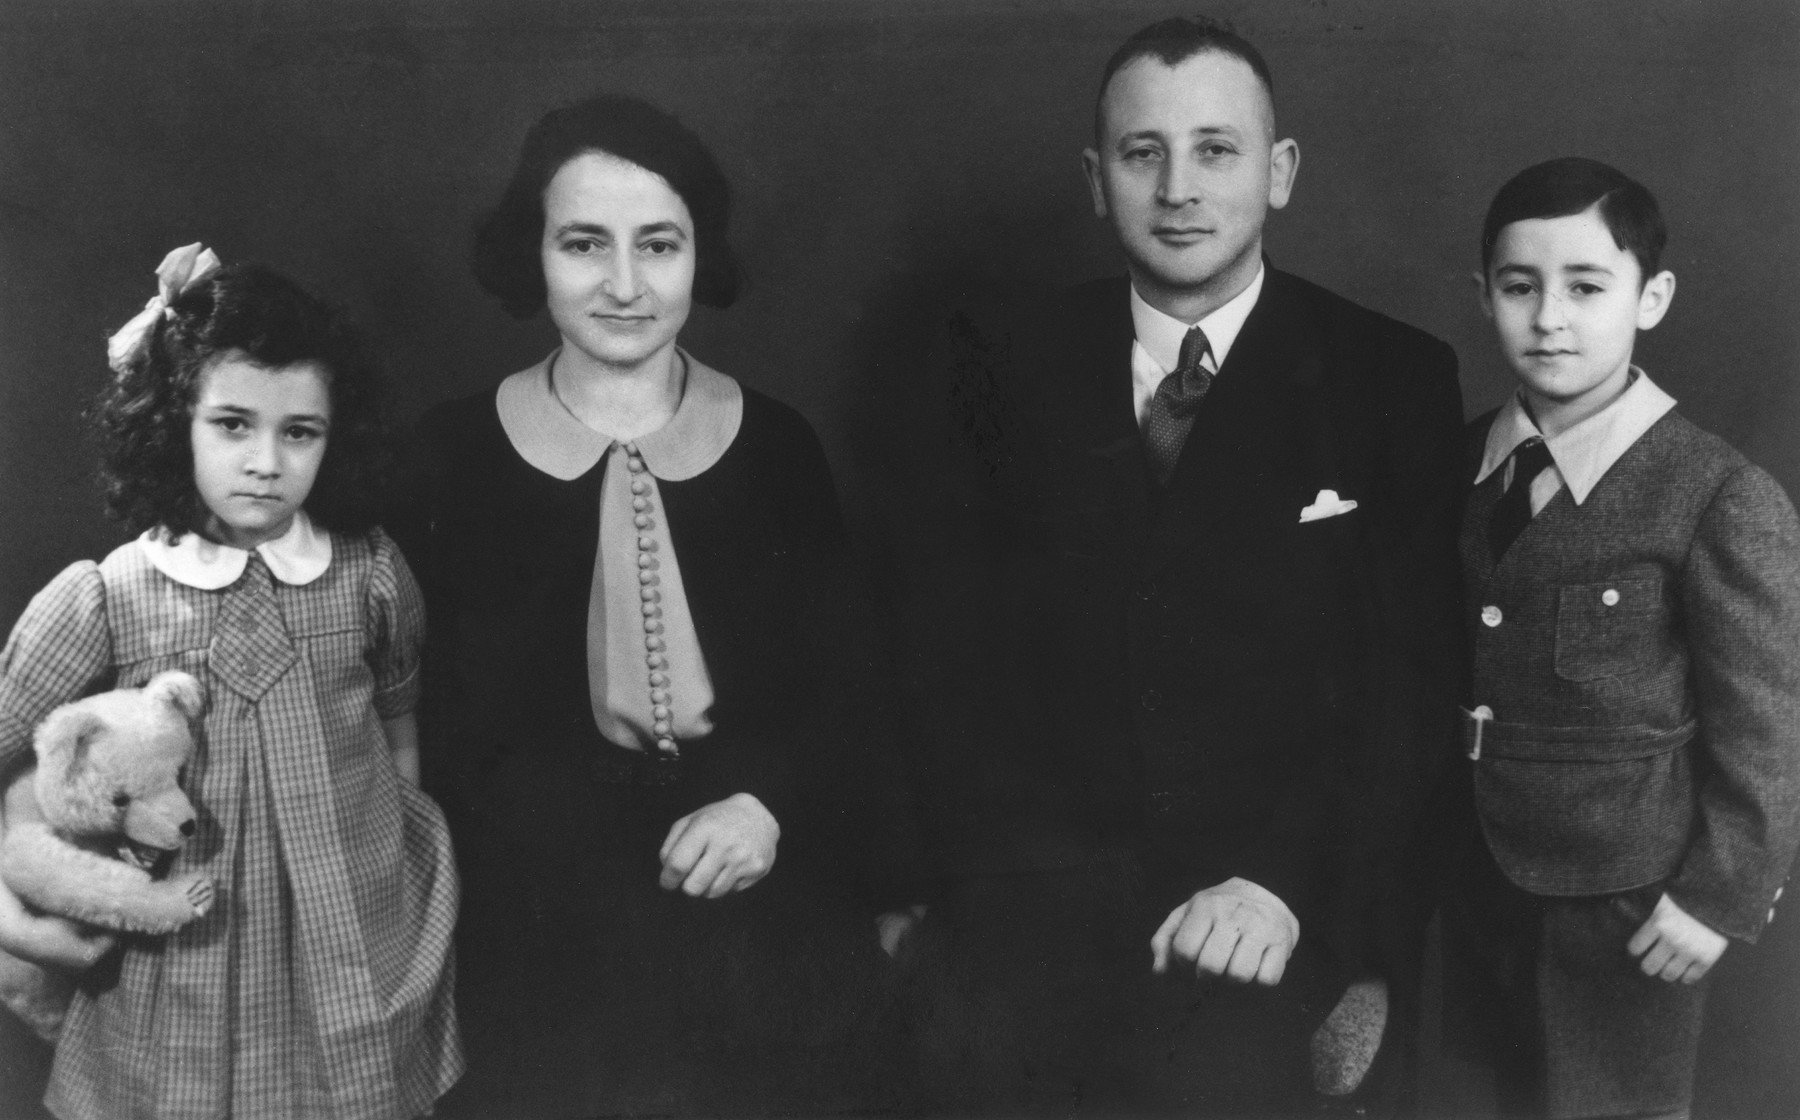 Studio portrait of the family of Leopold and Bella Loeb.  Pictured from left to right are: Ruth, Bella, Leopold, and Armin Leopold.